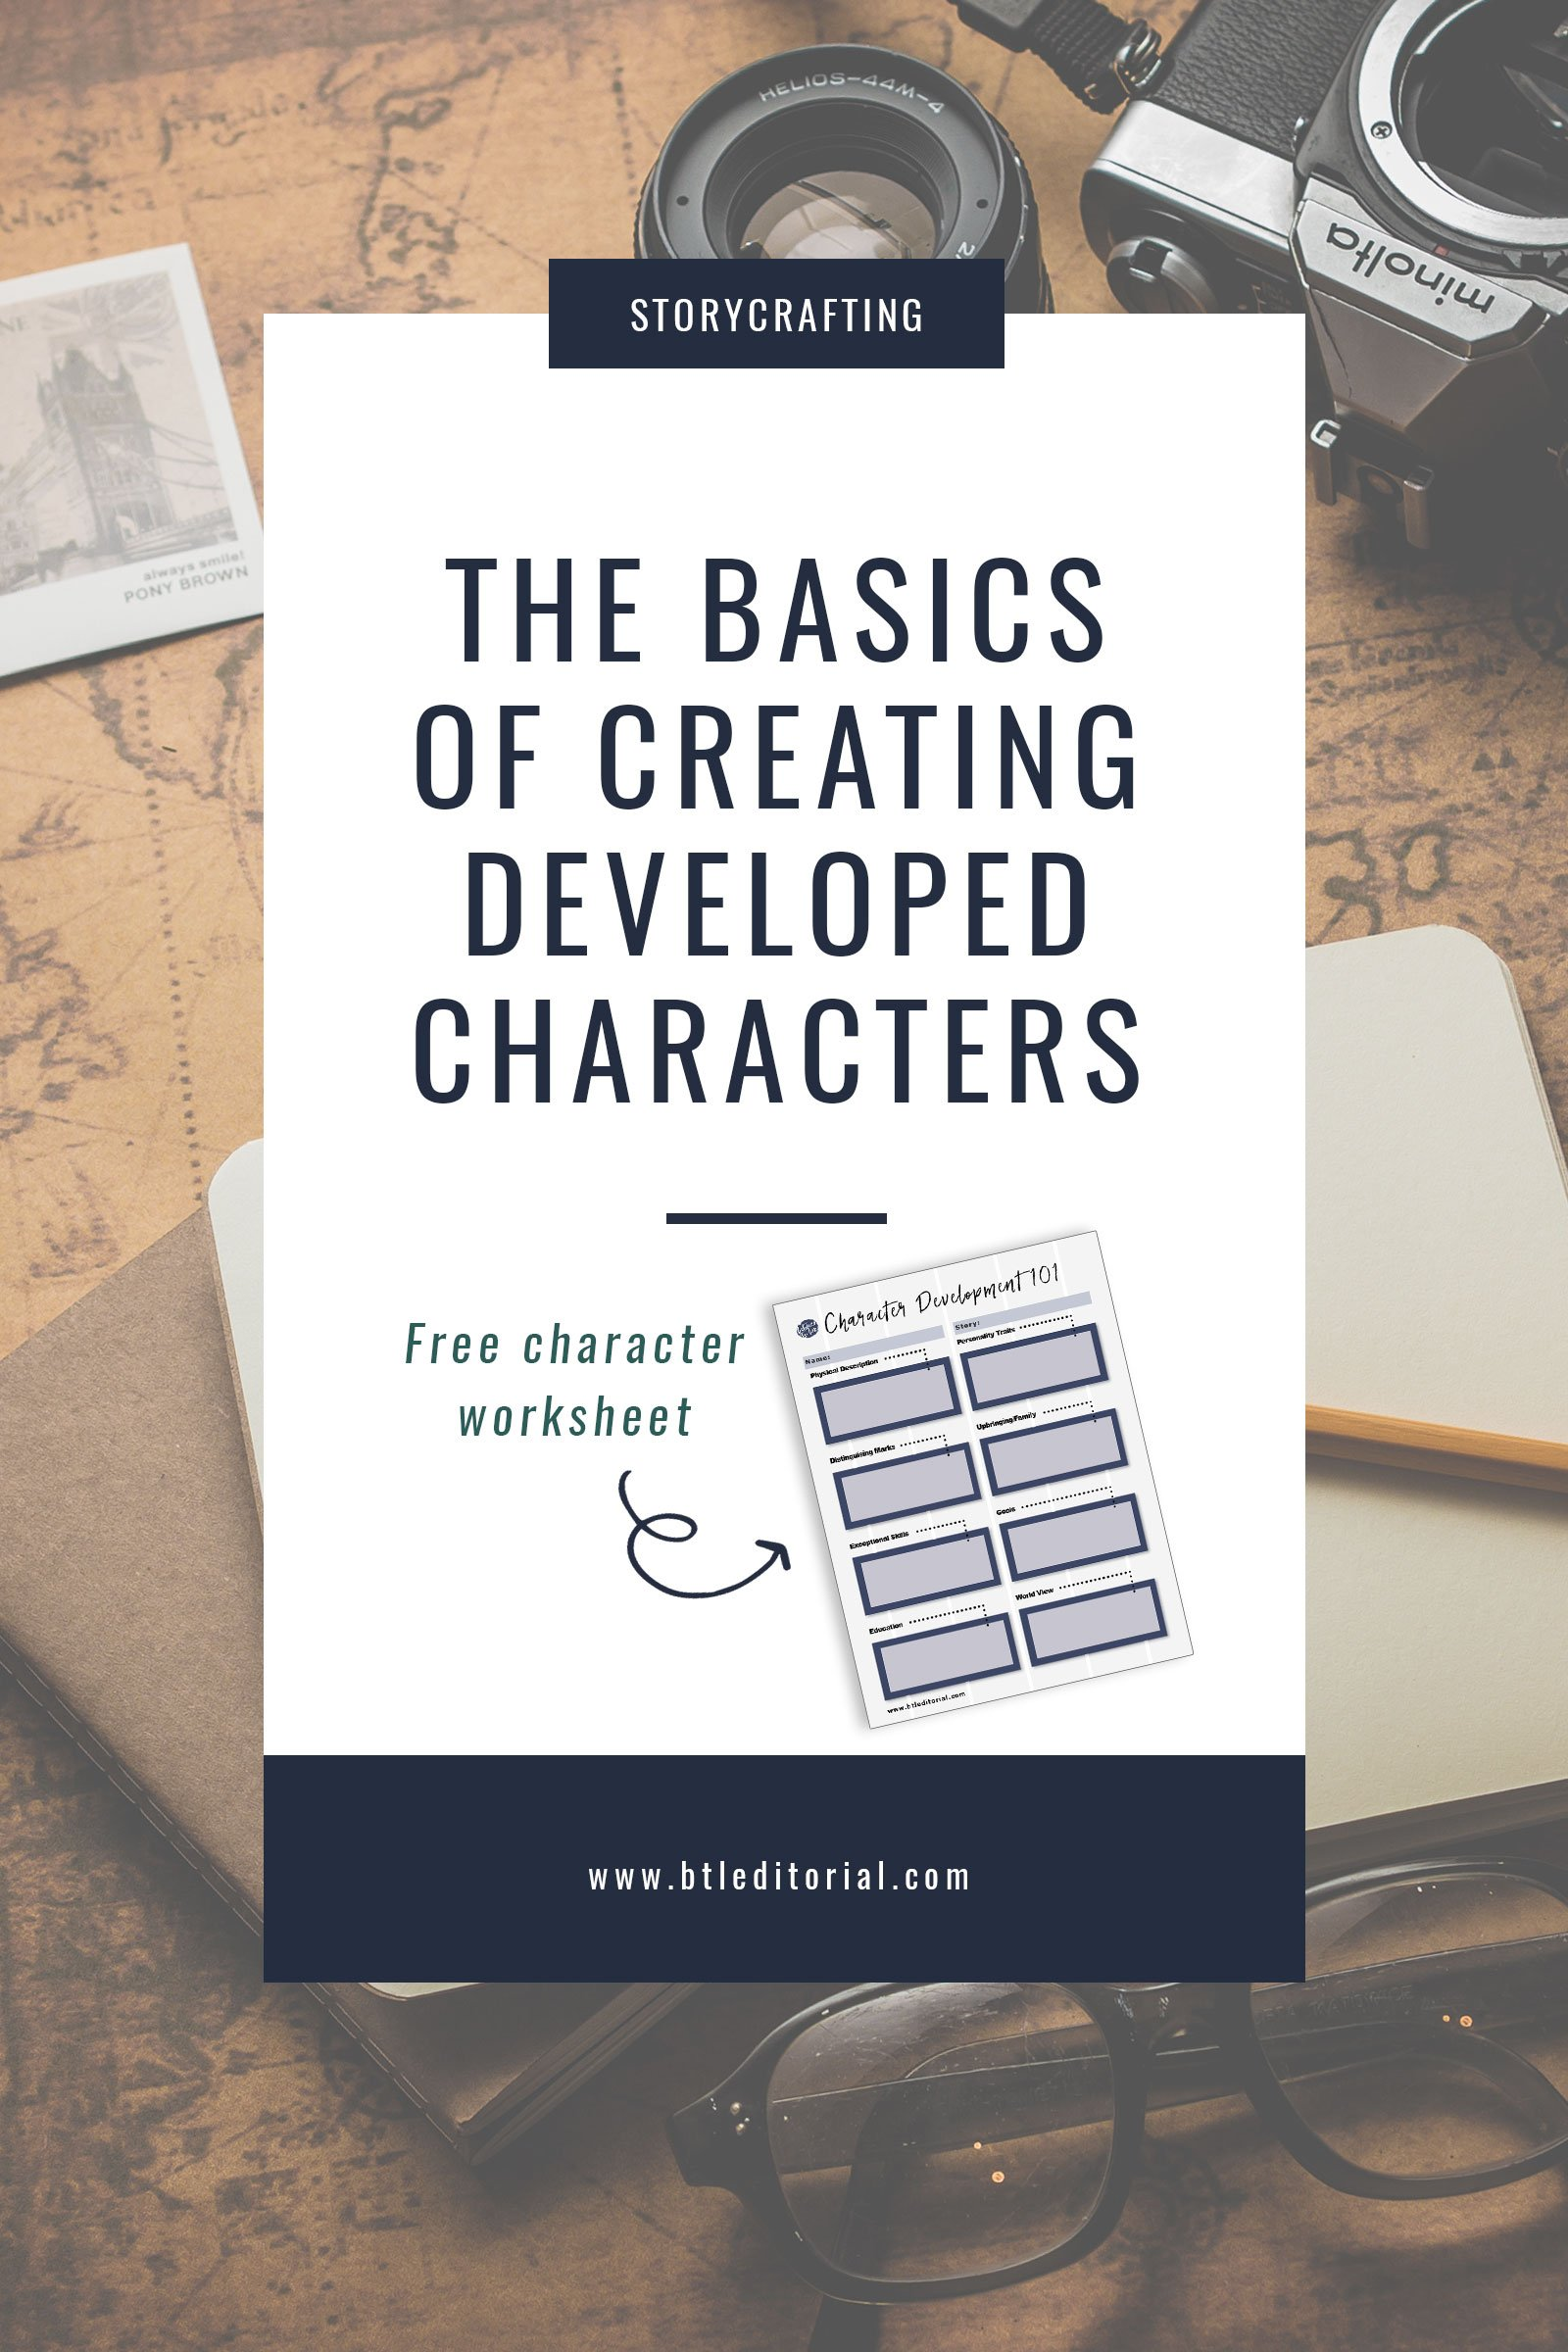 The Basics of Creating Developed Characters | Between the Lines Editorial